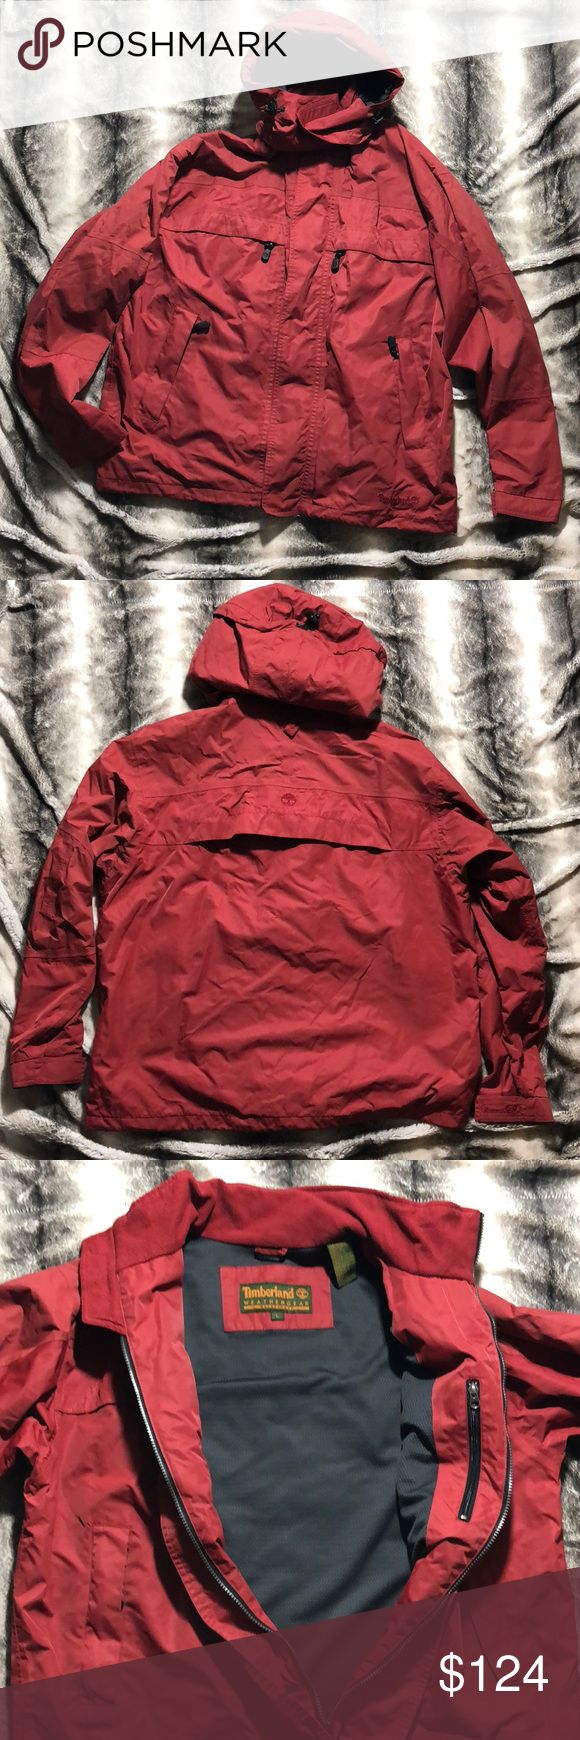 Timberland Waterproof Weathergear Coat This is a good condition Timberland Waterproof Weathergear Coat. The red is a great look. Inside is very clean. There are a few small non penetration scratches underneath and slightly behind the left arm. This jacket has been used and warm but still looks really great. You will turn heads sporting this jacket bc Timberland is a top shelf brand as you know :-) make me an offer and let's up your flashon game. Timberland Jackets & Coats